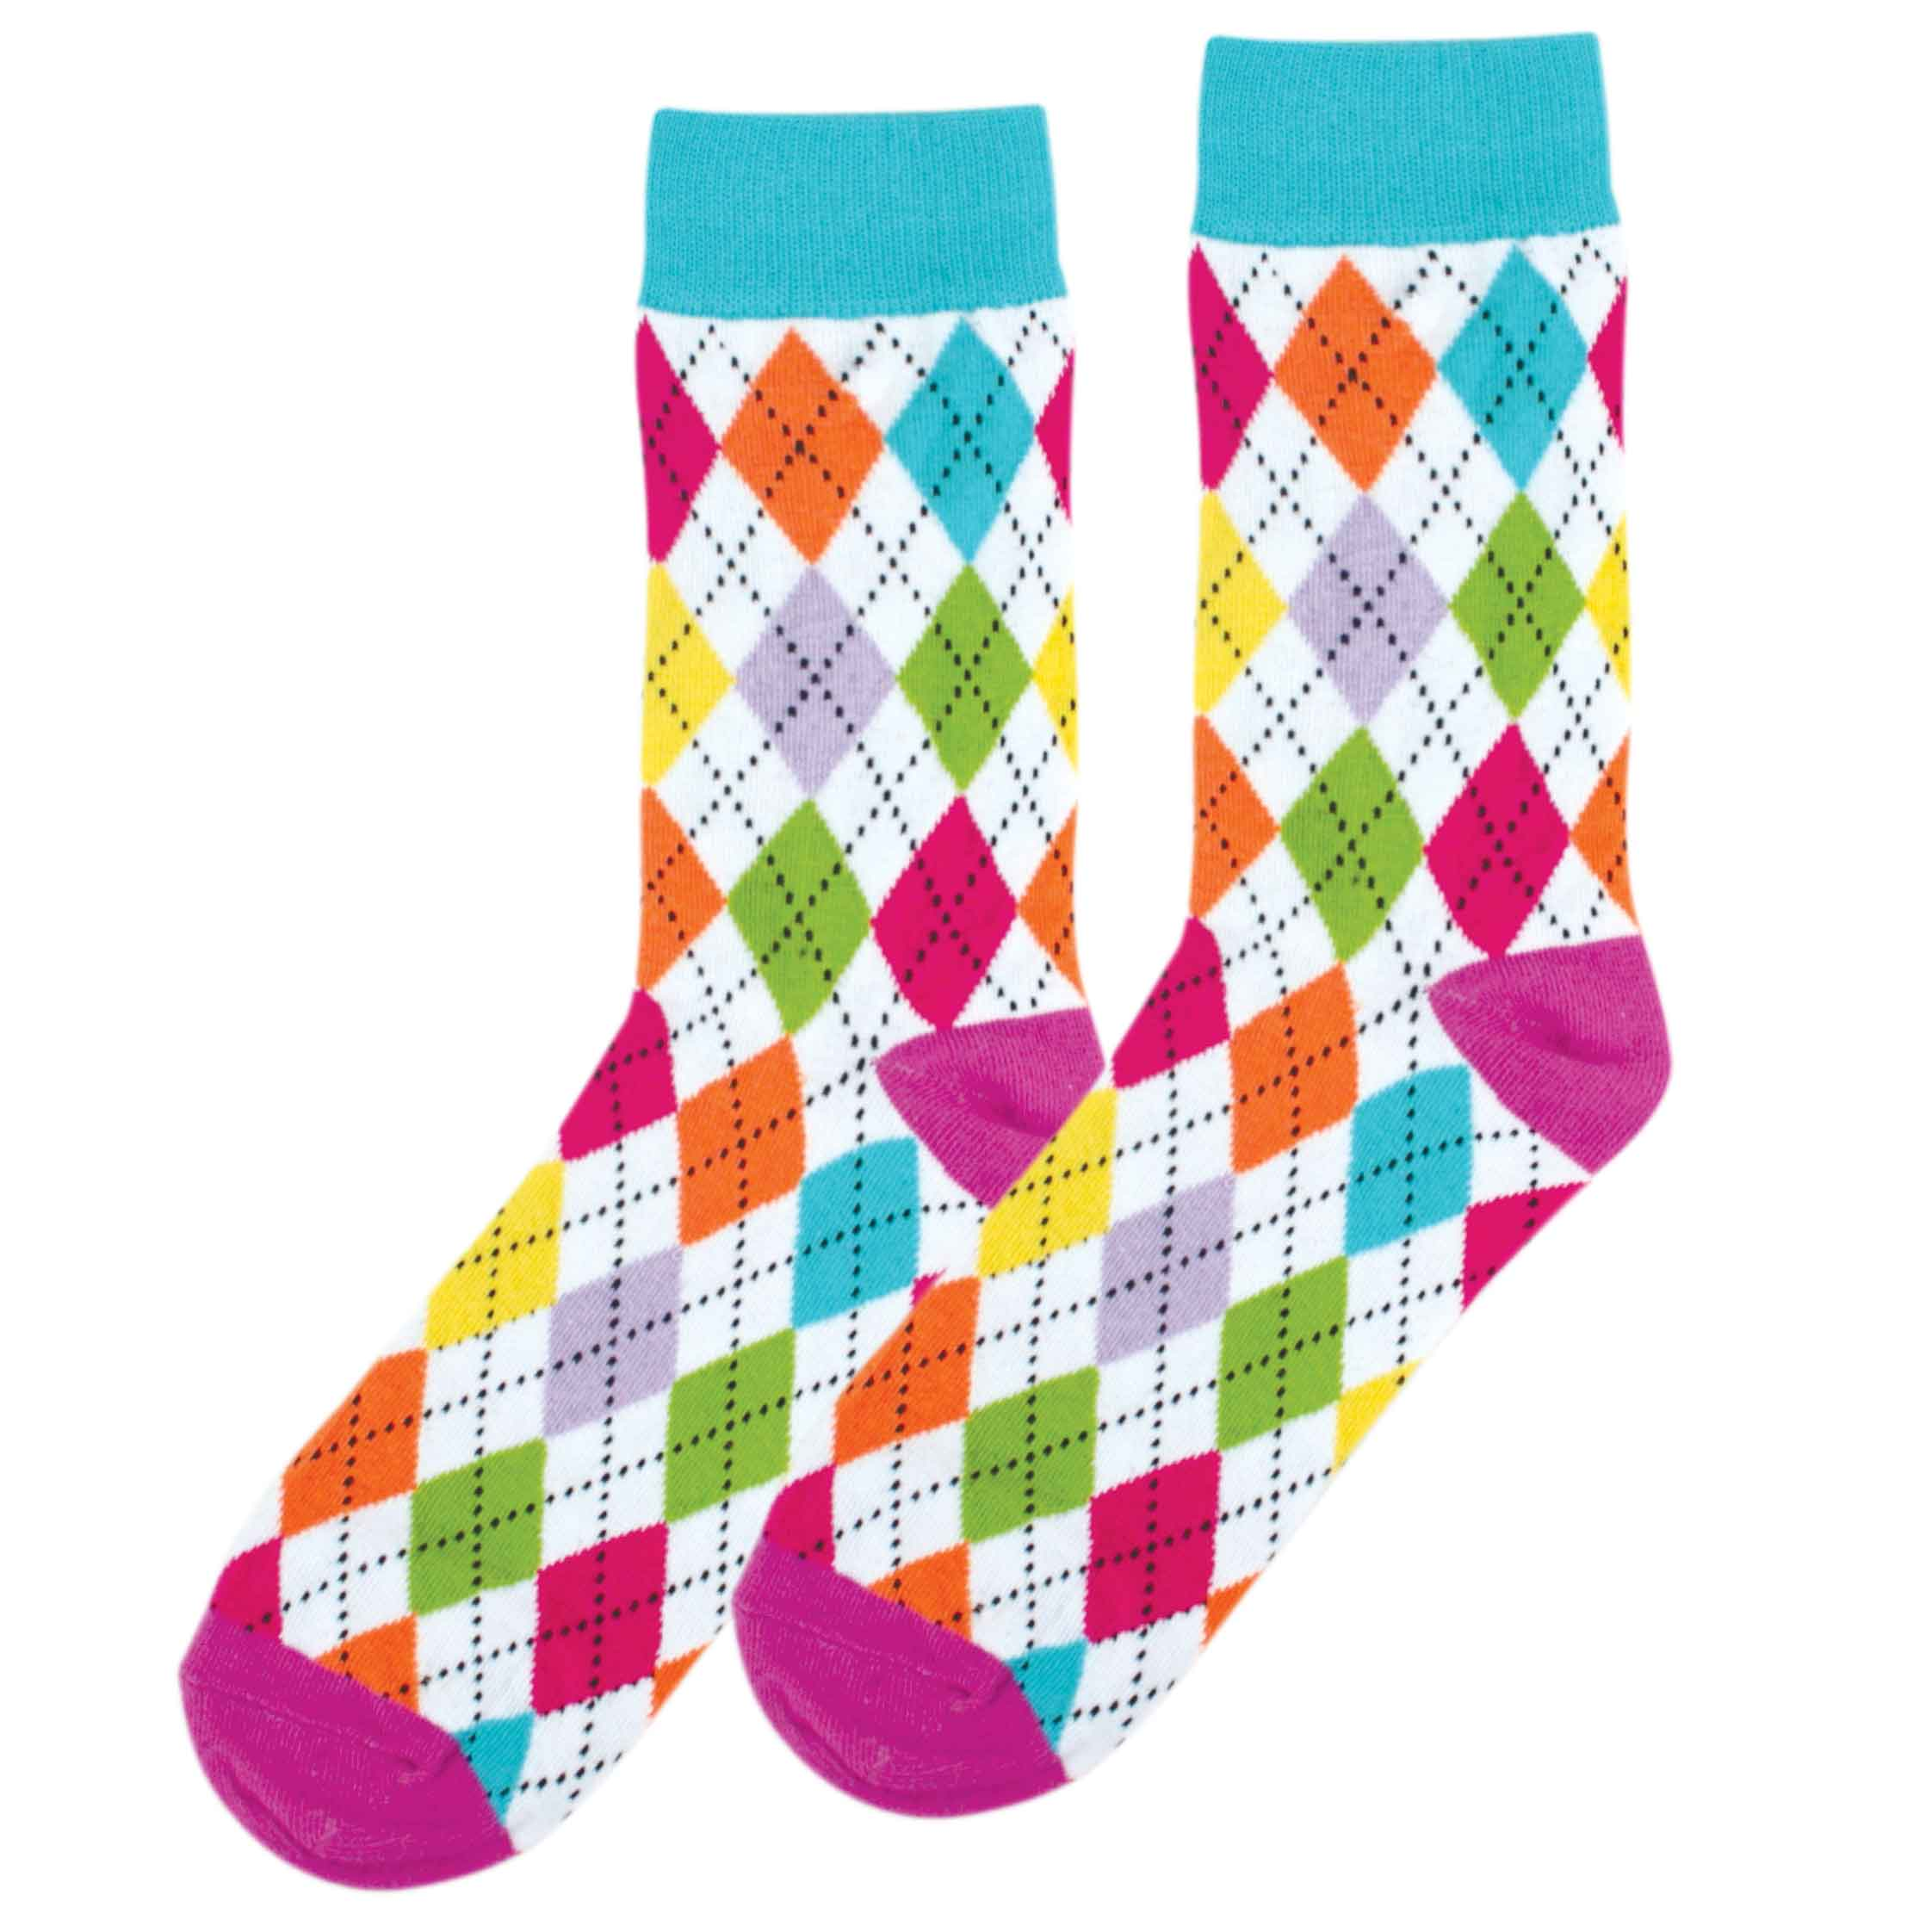 Argyle fun socks